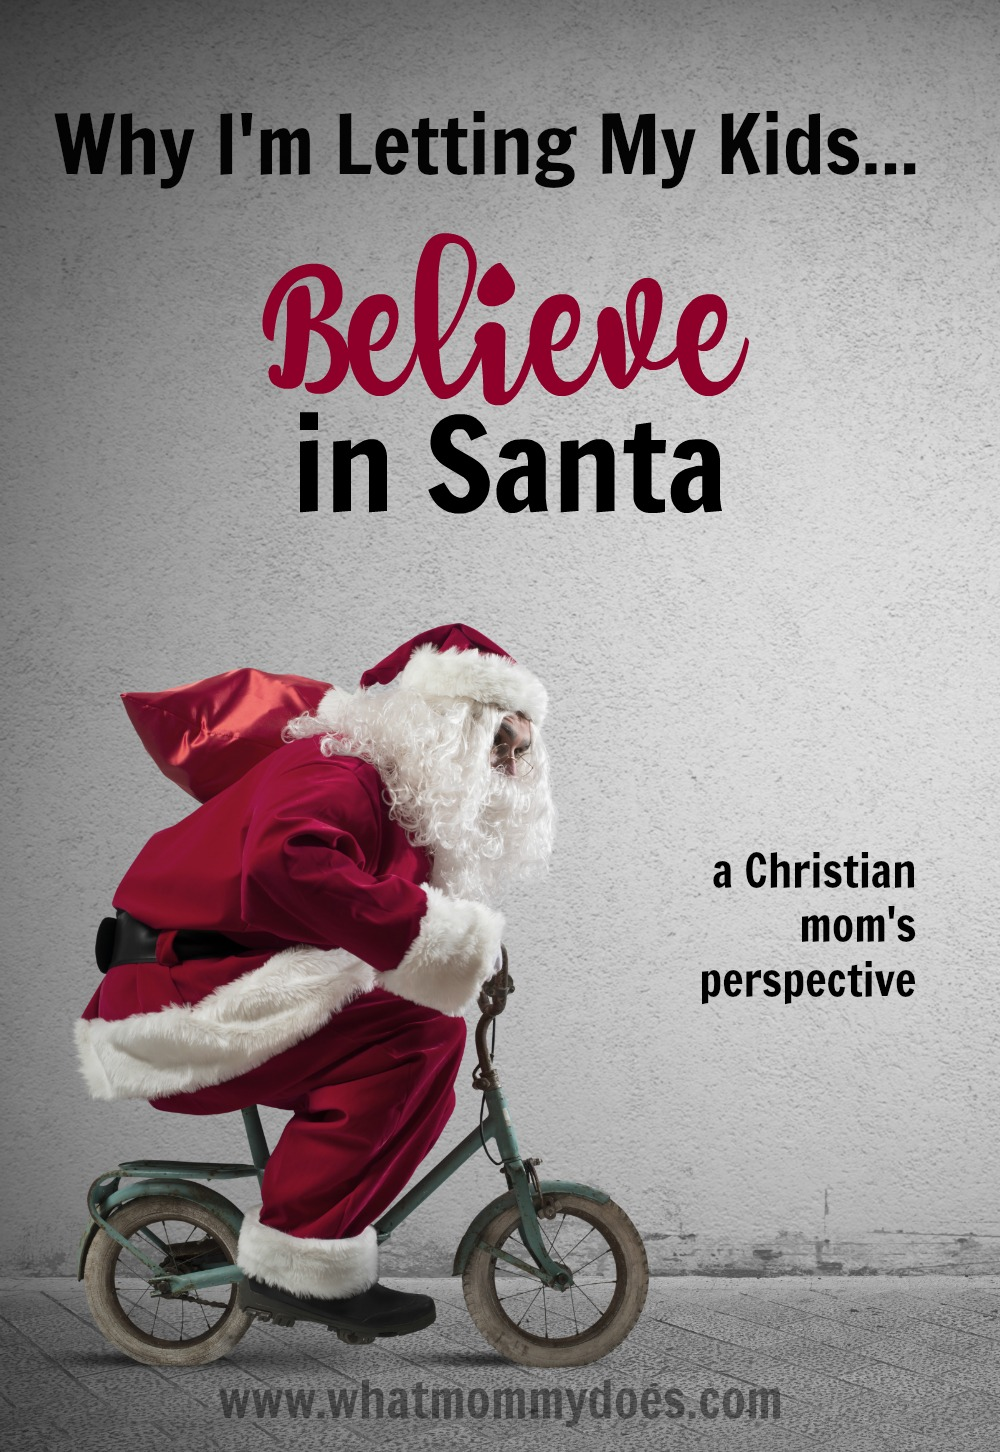 As a Christian mom, I had to take a stance on this whole Santa thing. Here is WHY I chose not to ruin the magic of Santa Claus for my kids.